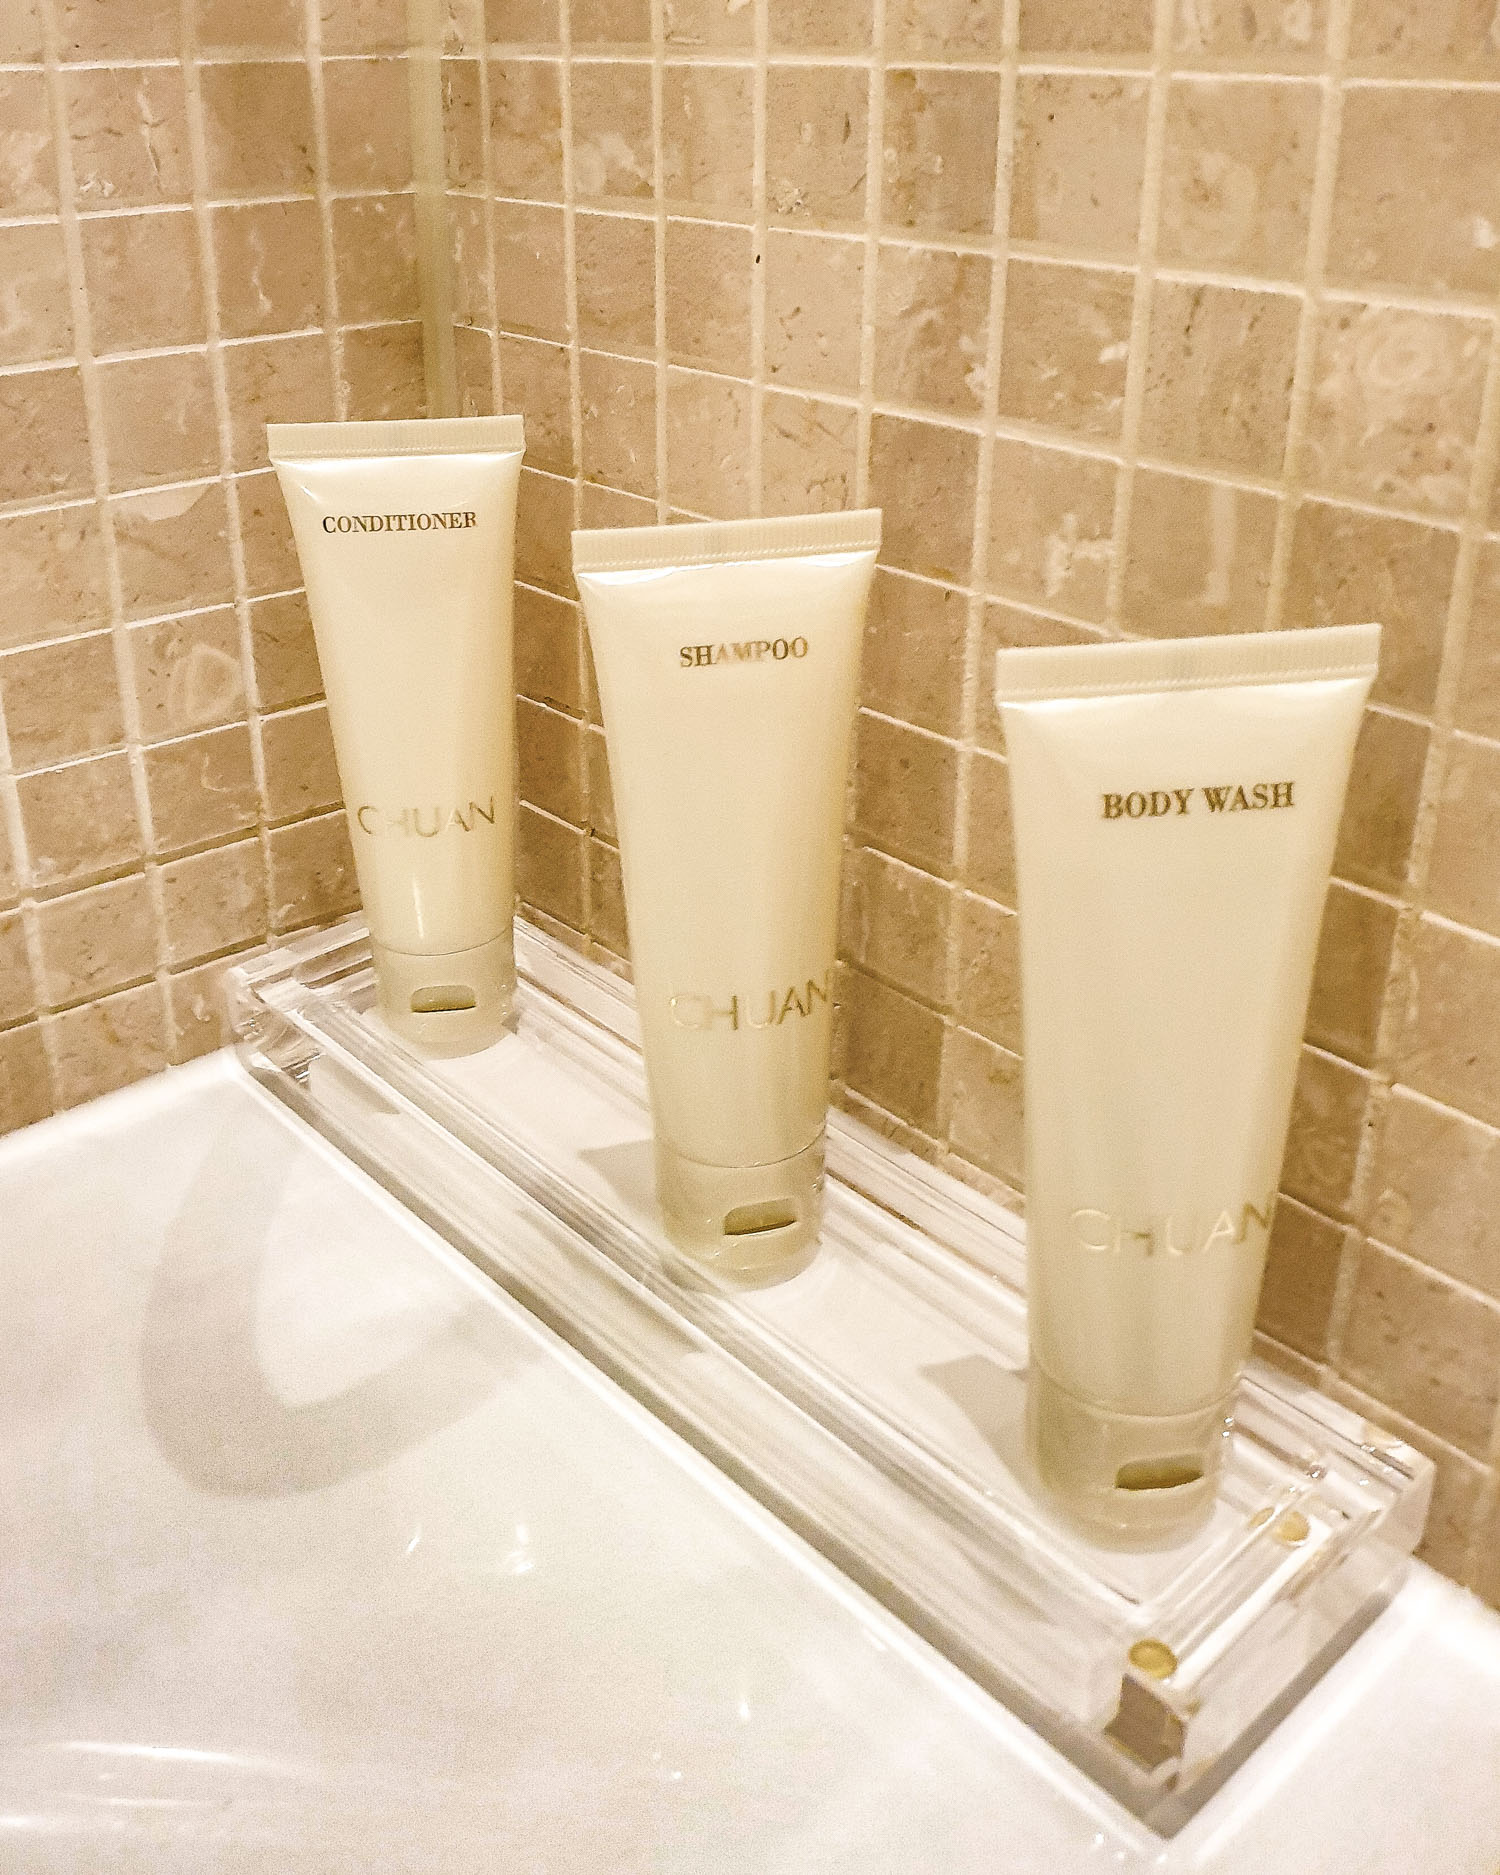 The Langham London chuan bath products